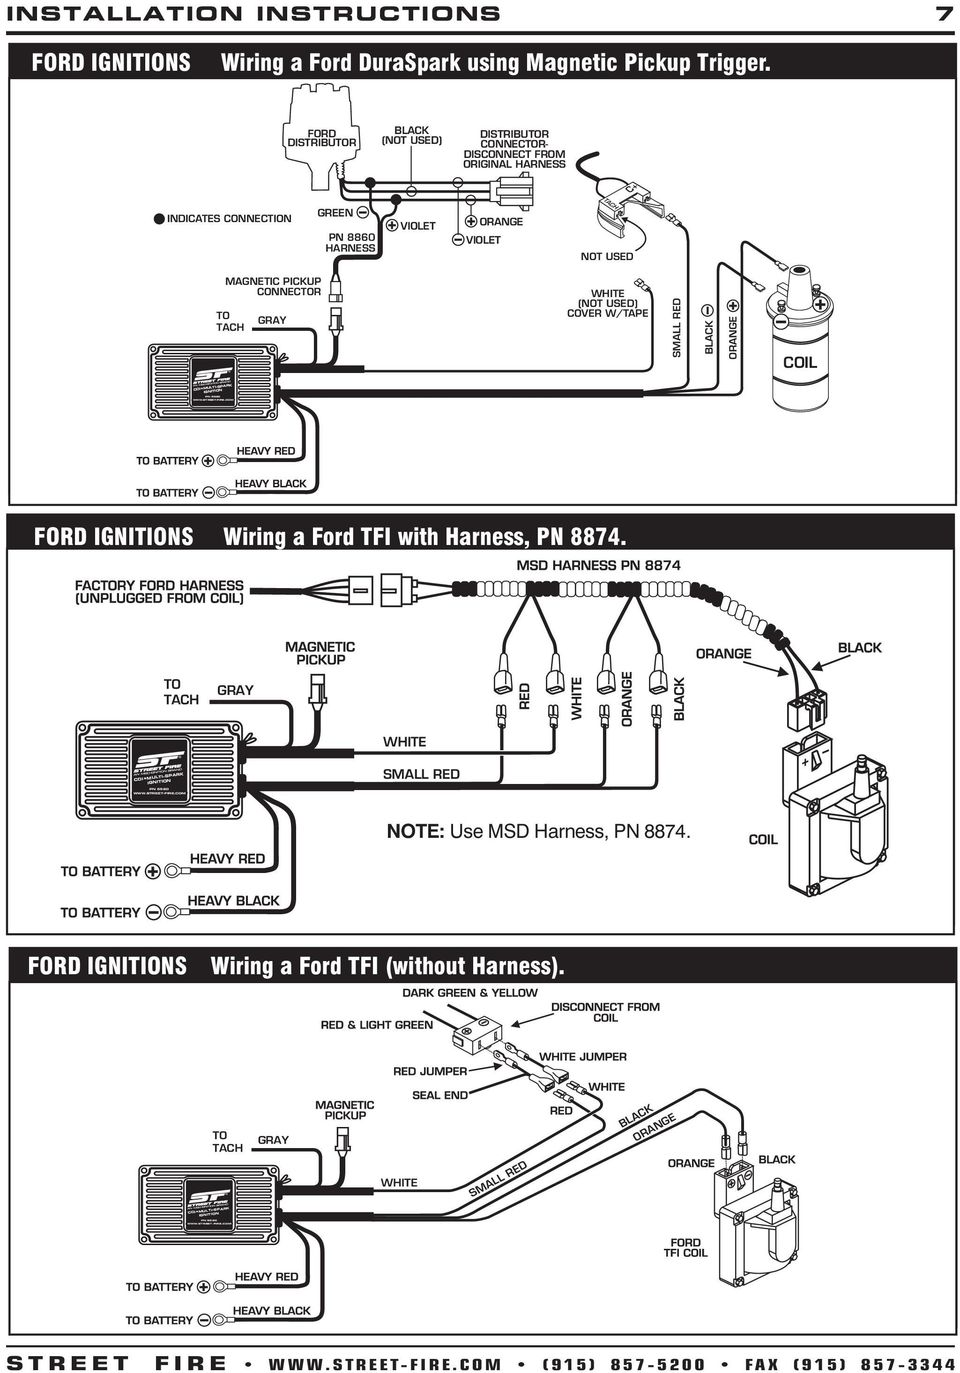 medium resolution of msd 5520 ignition wiring diagram msd ignition diagram ford duraspark ignition system ford duraspark ignition system